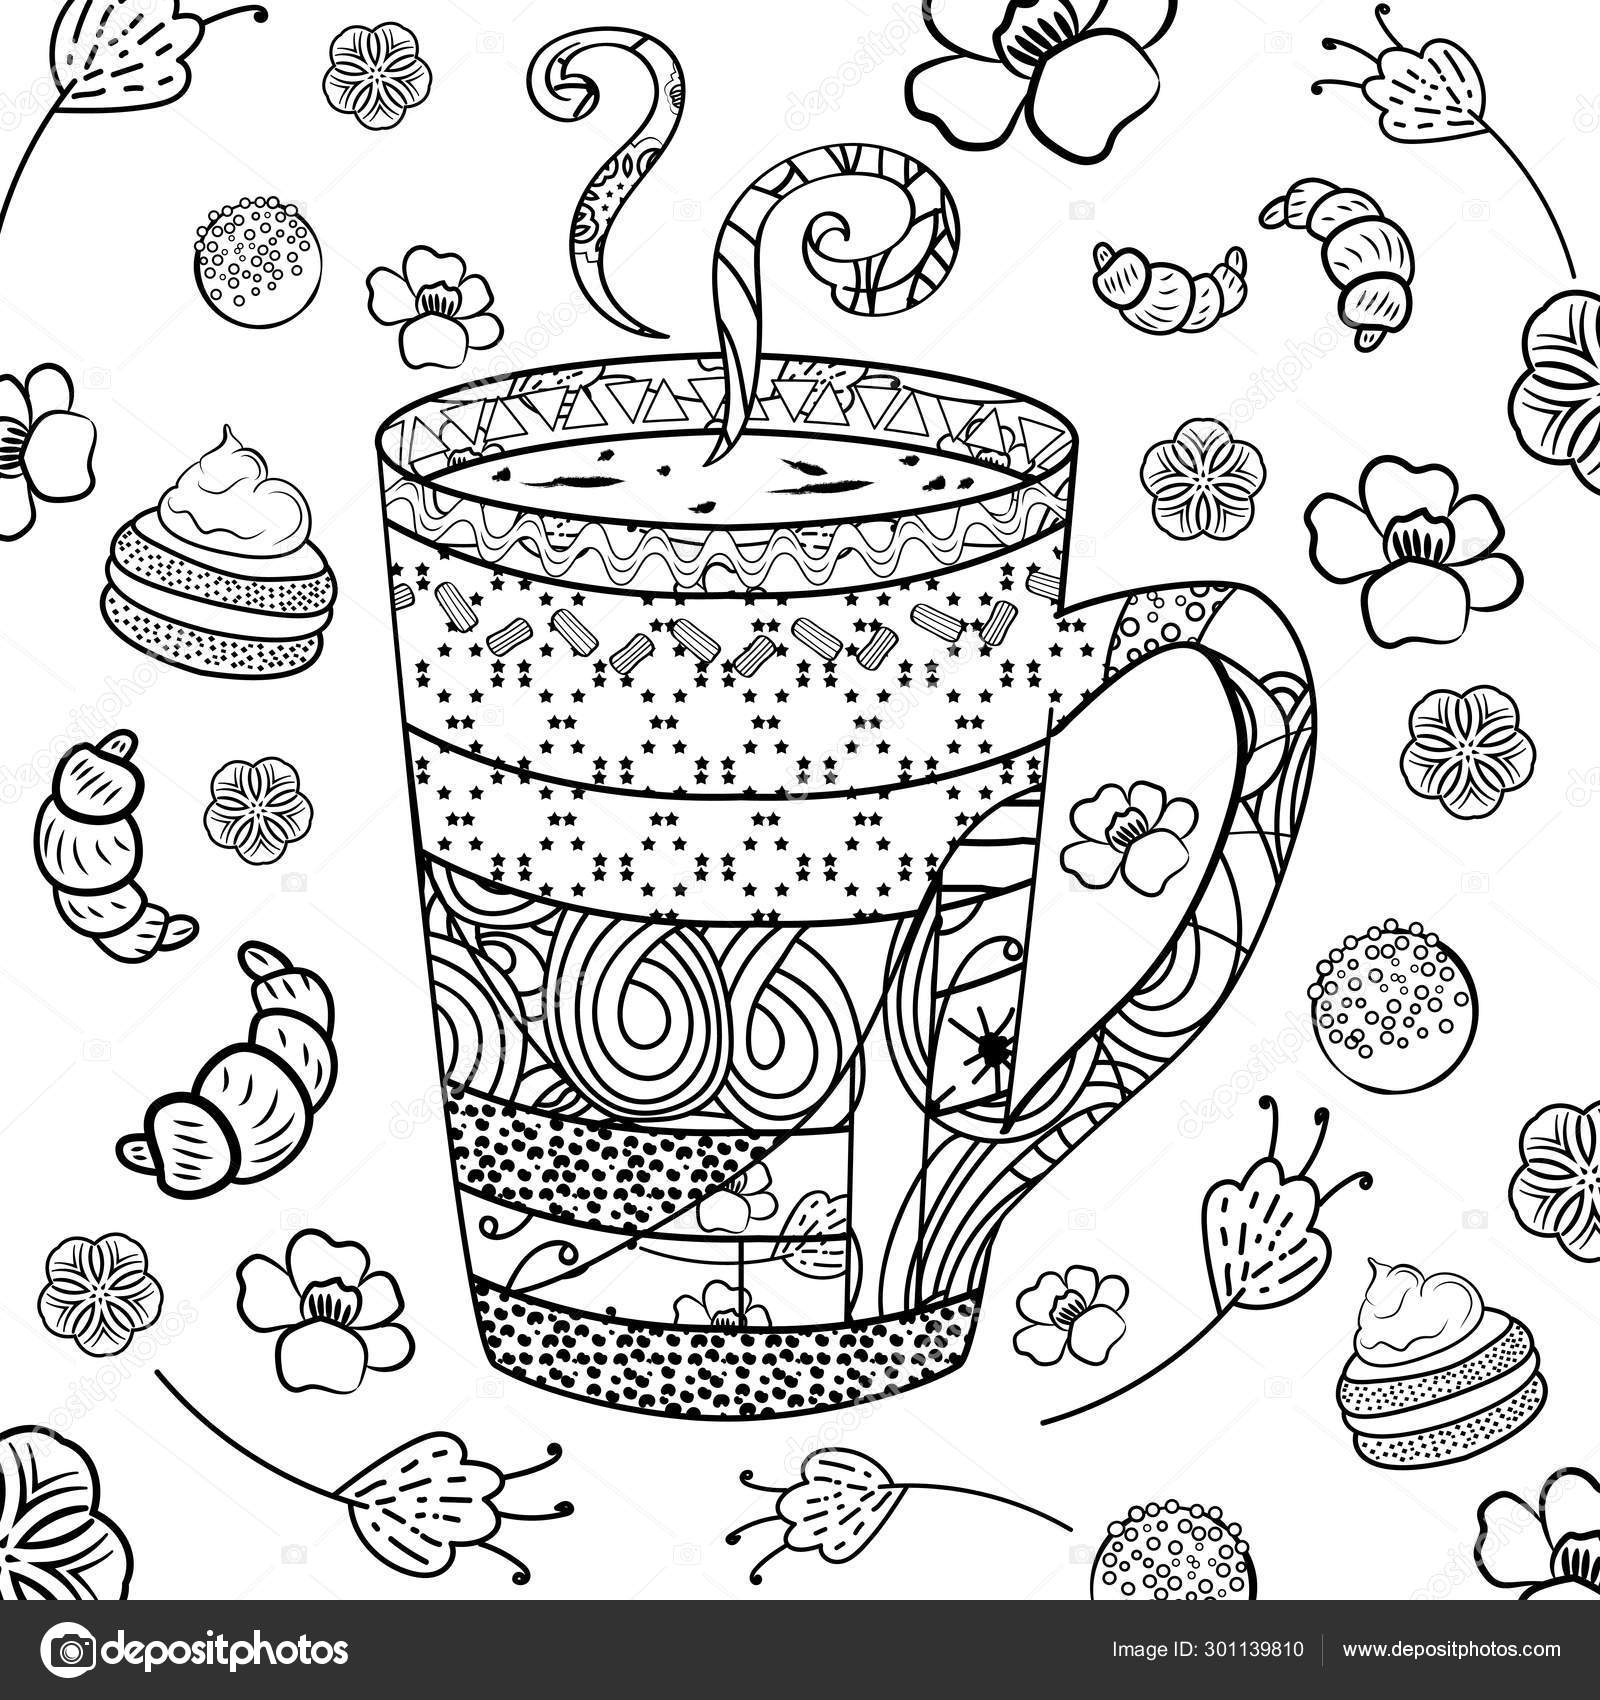 coloring book ~ Zentangle Coloring Book Stock Vector Illustration ... | 1700x1600